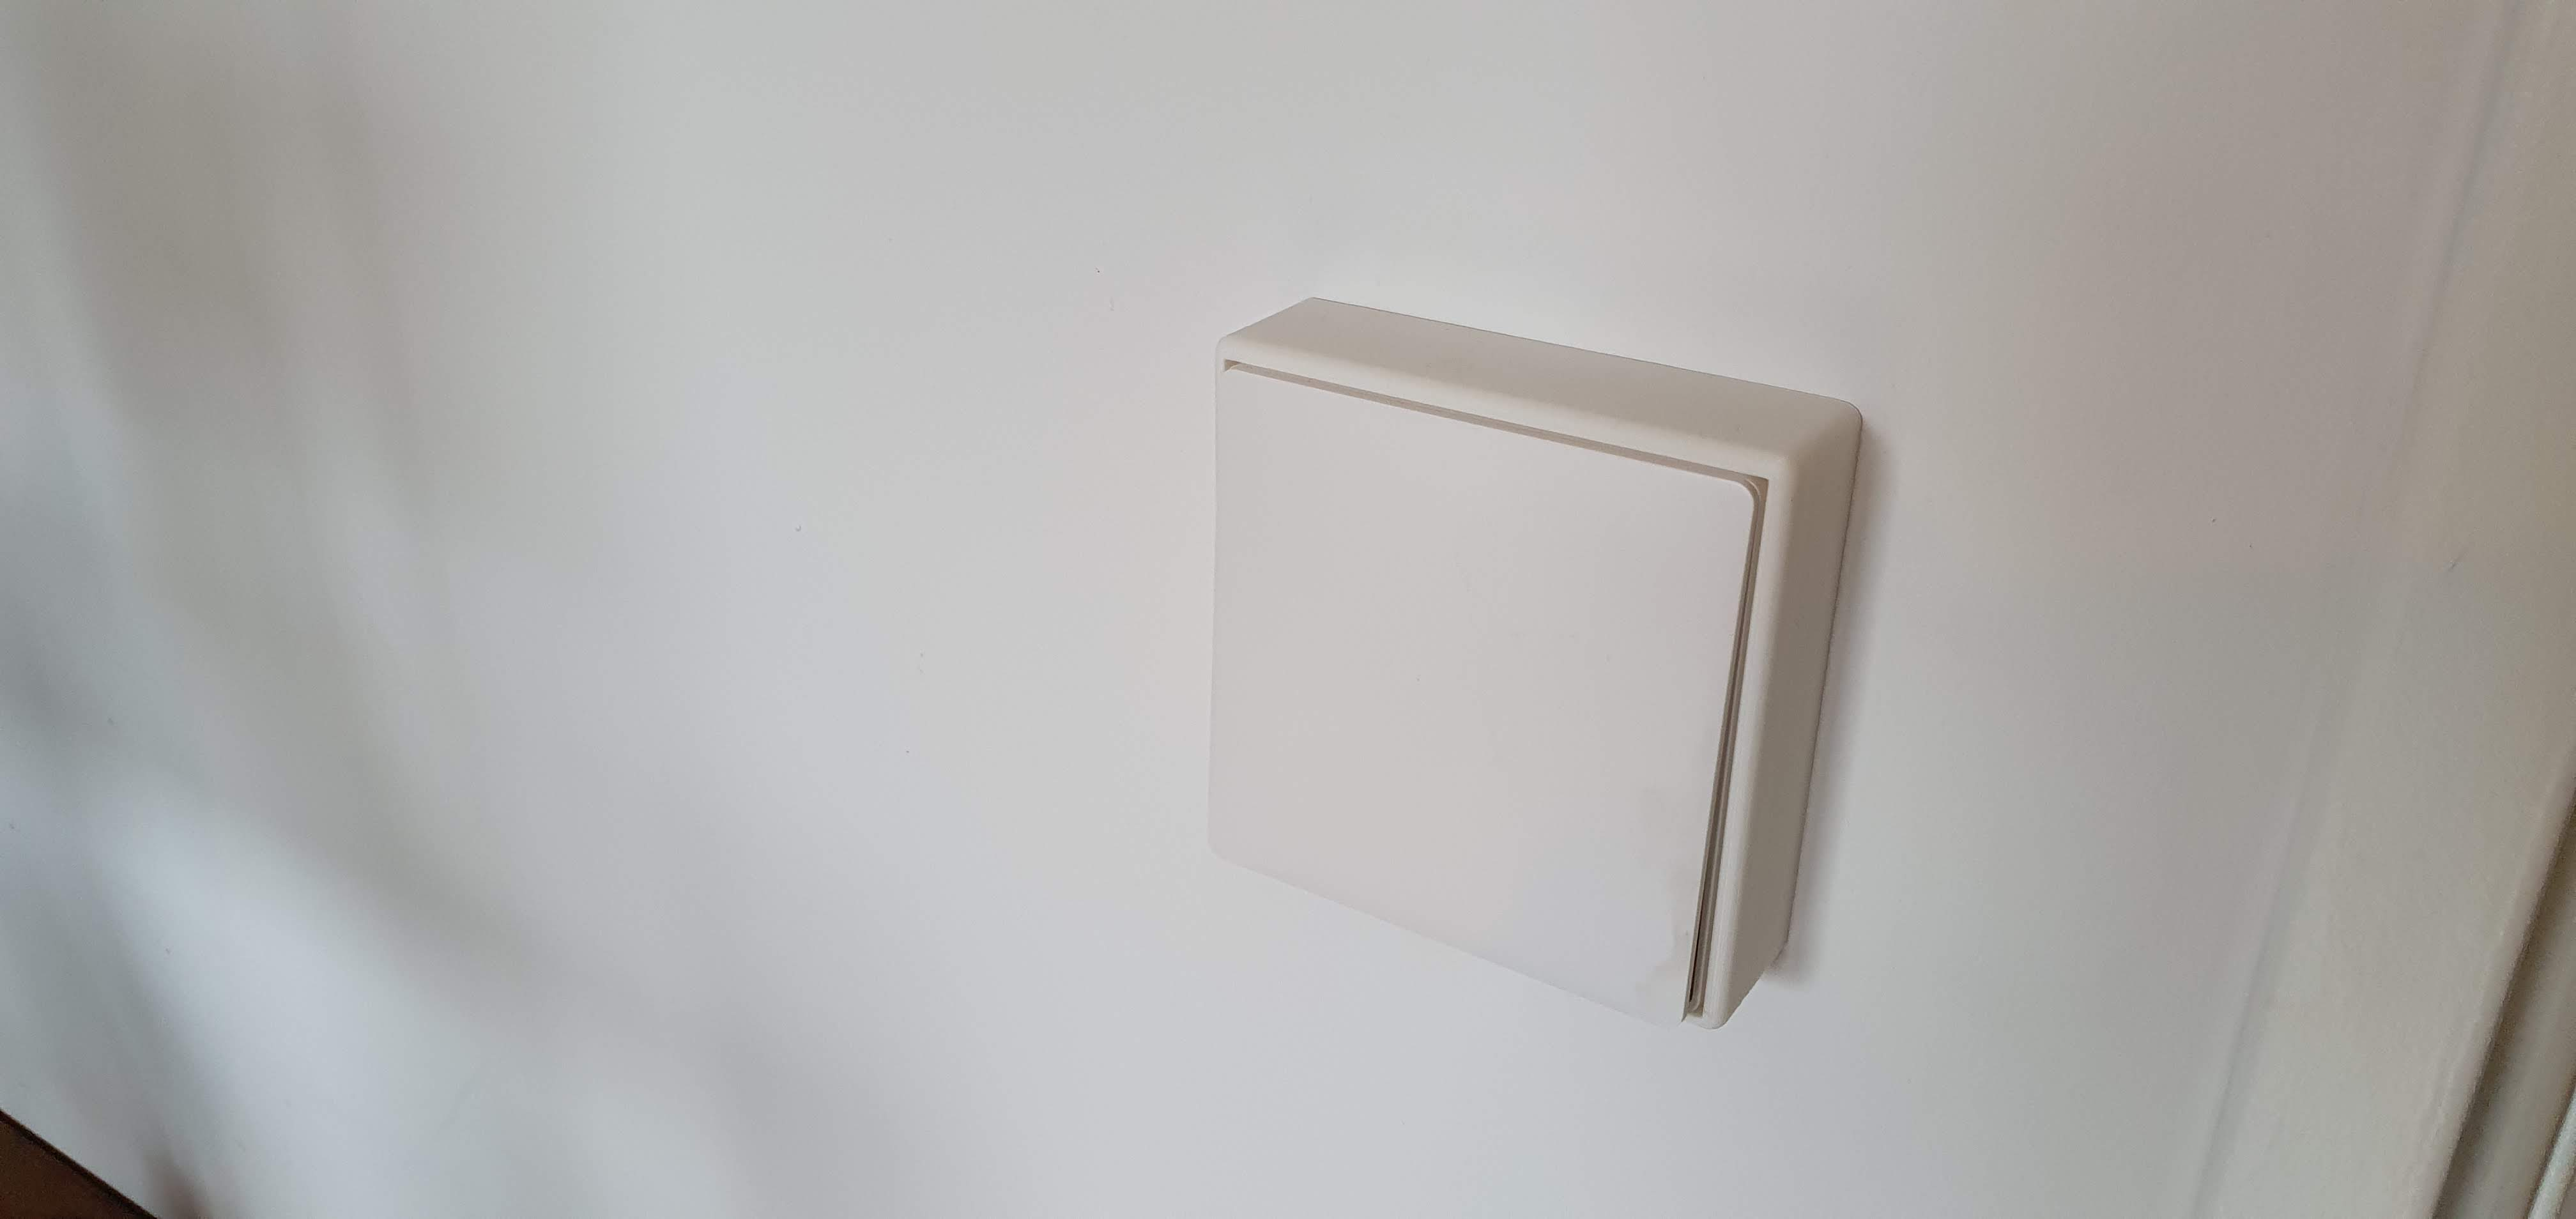 05 smart wall switch